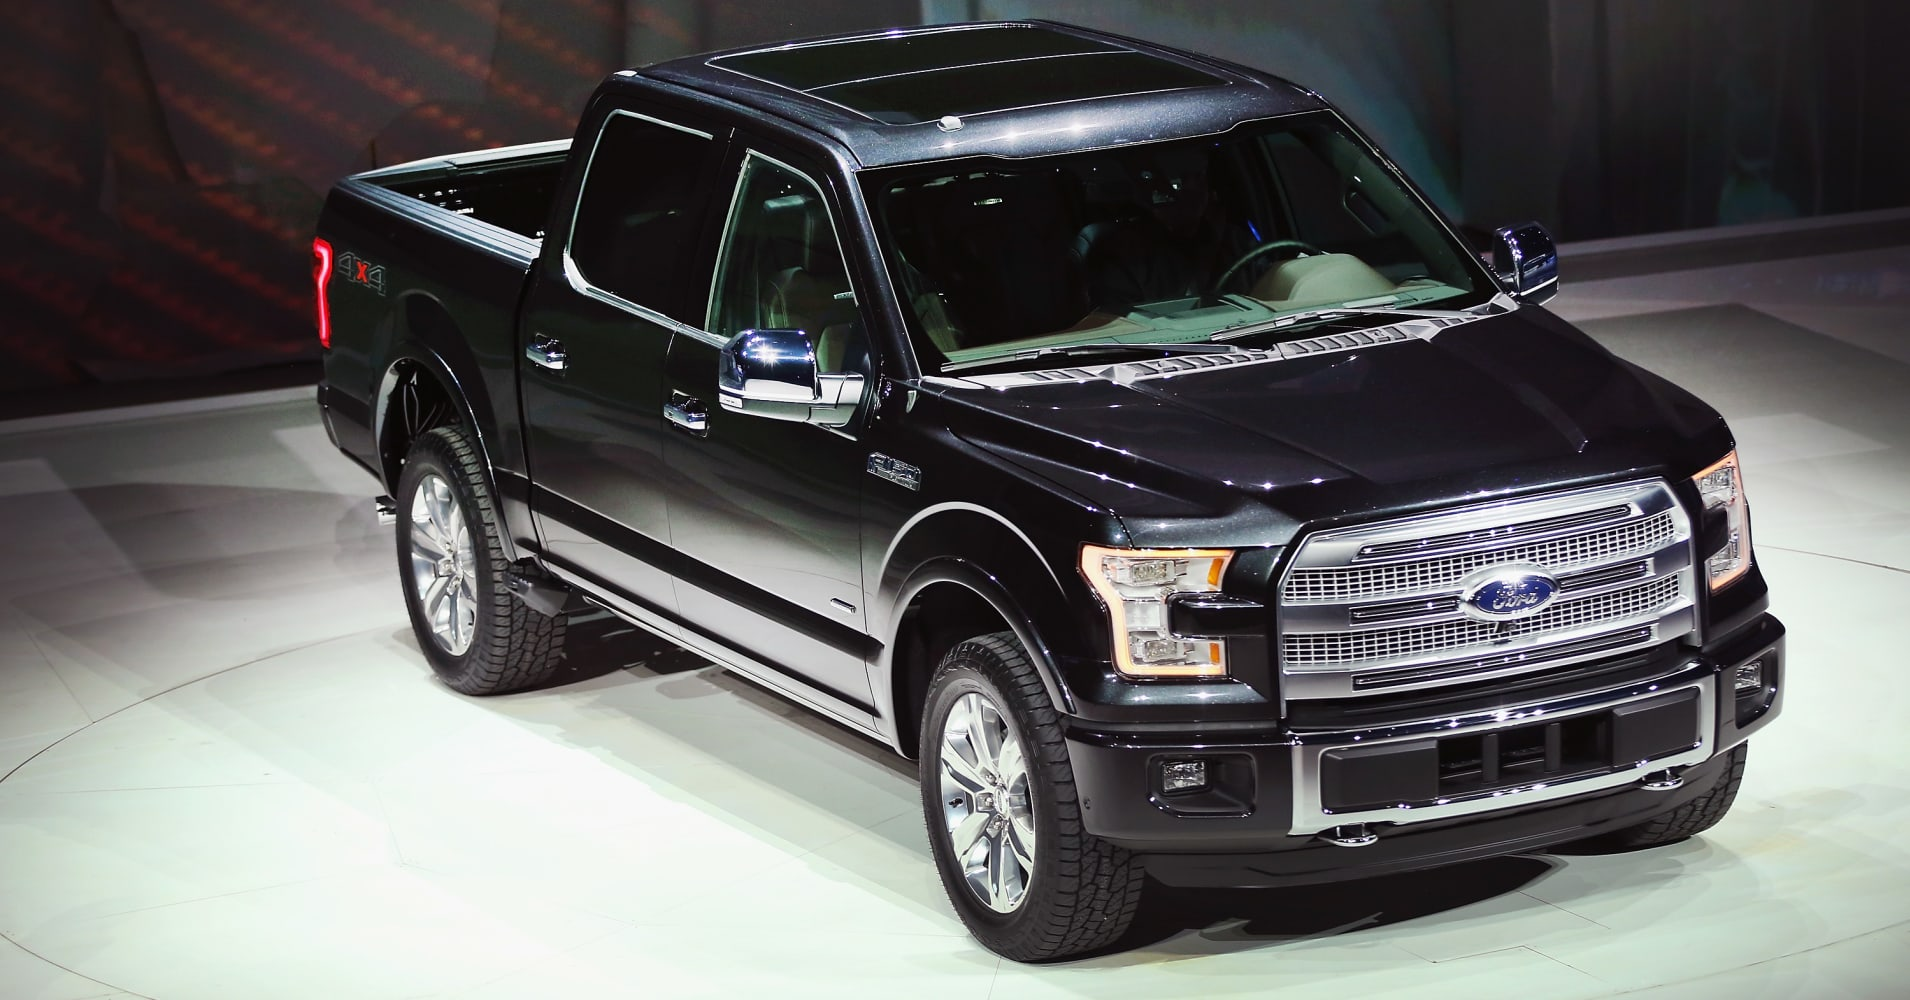 Luxury Vehicle: Trucks, Luxury Cars Lead Charge At Detroit Auto Show